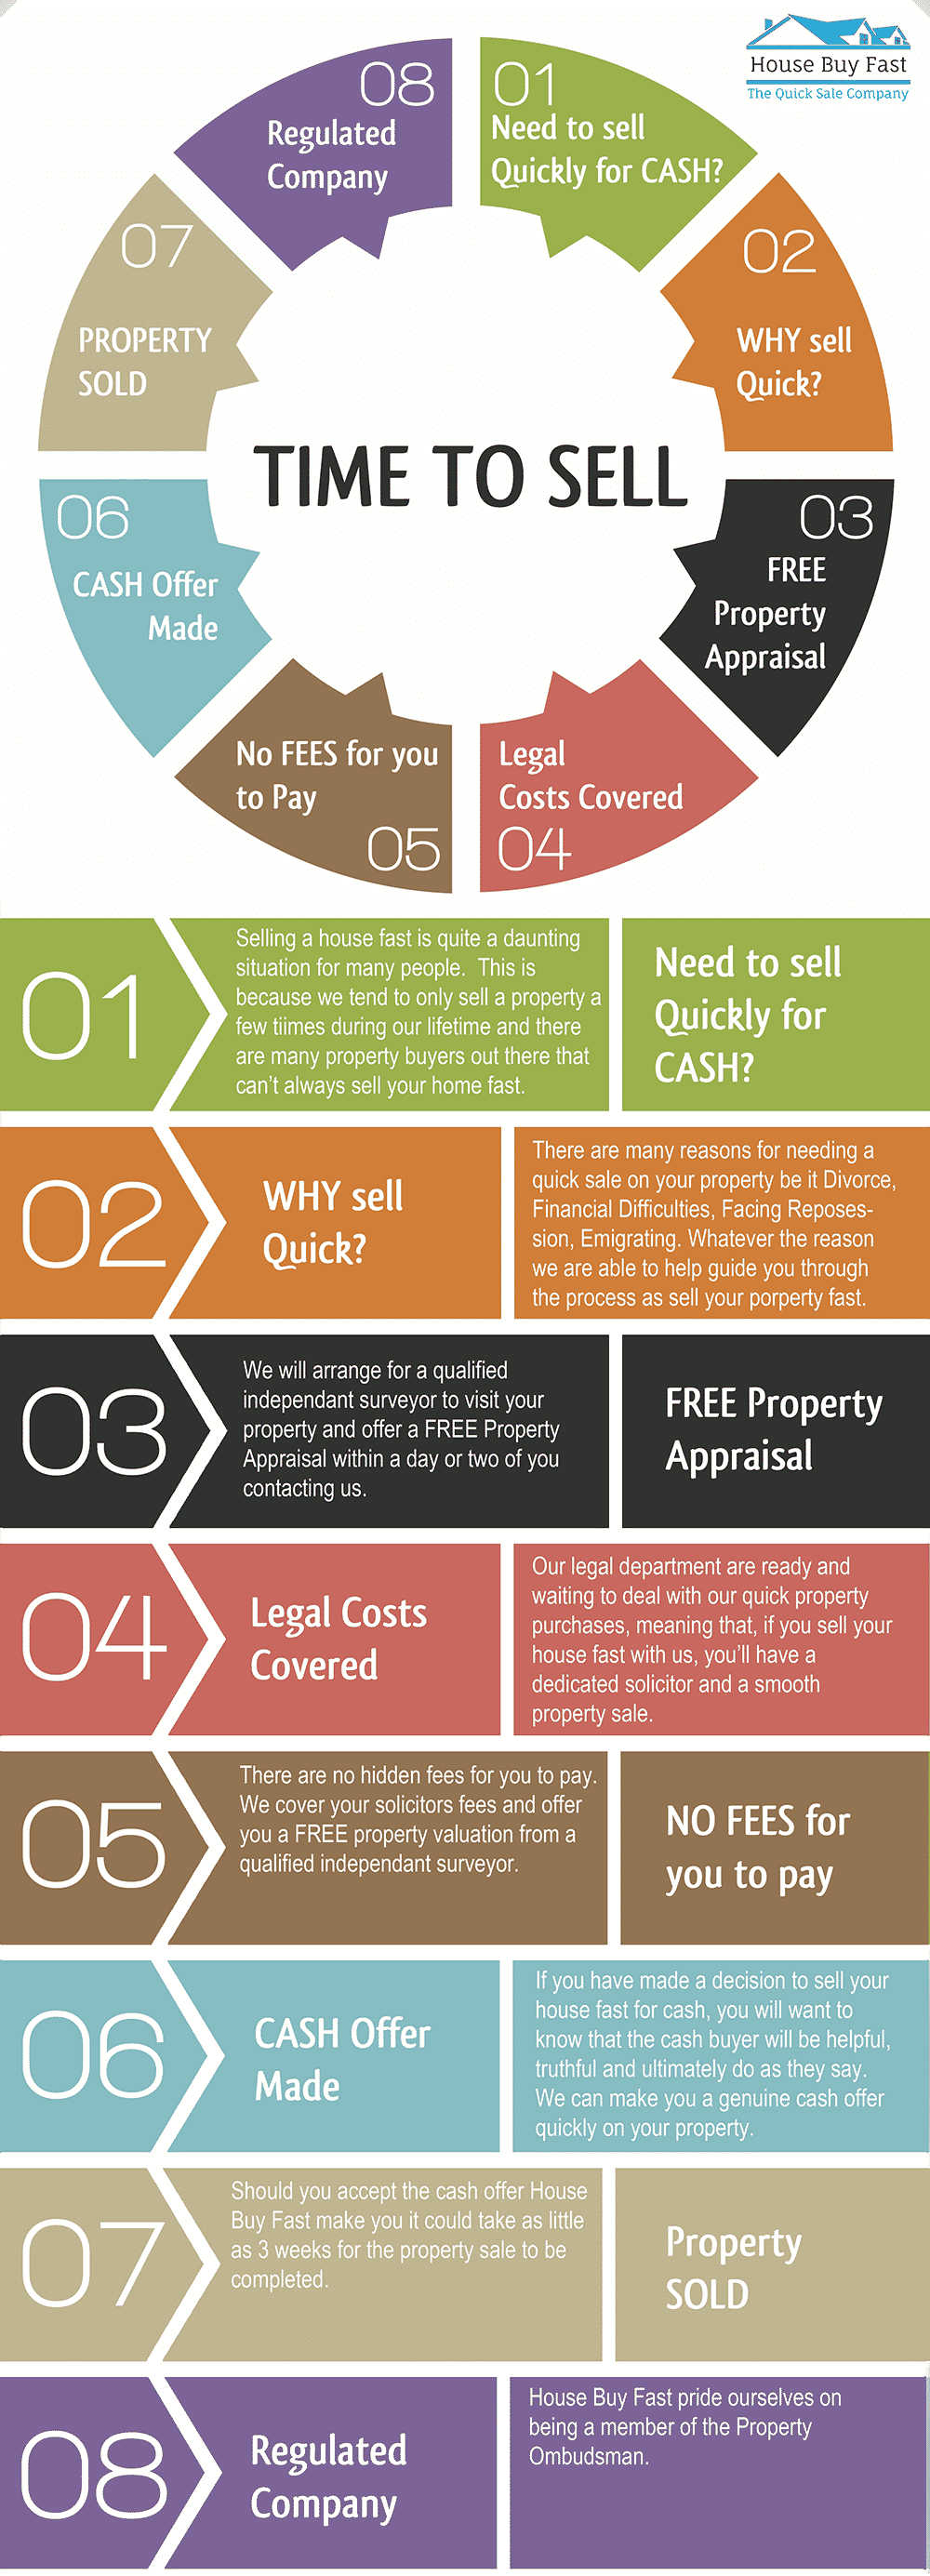 Sell House Fast Process (Infographic) | House Buy Fast